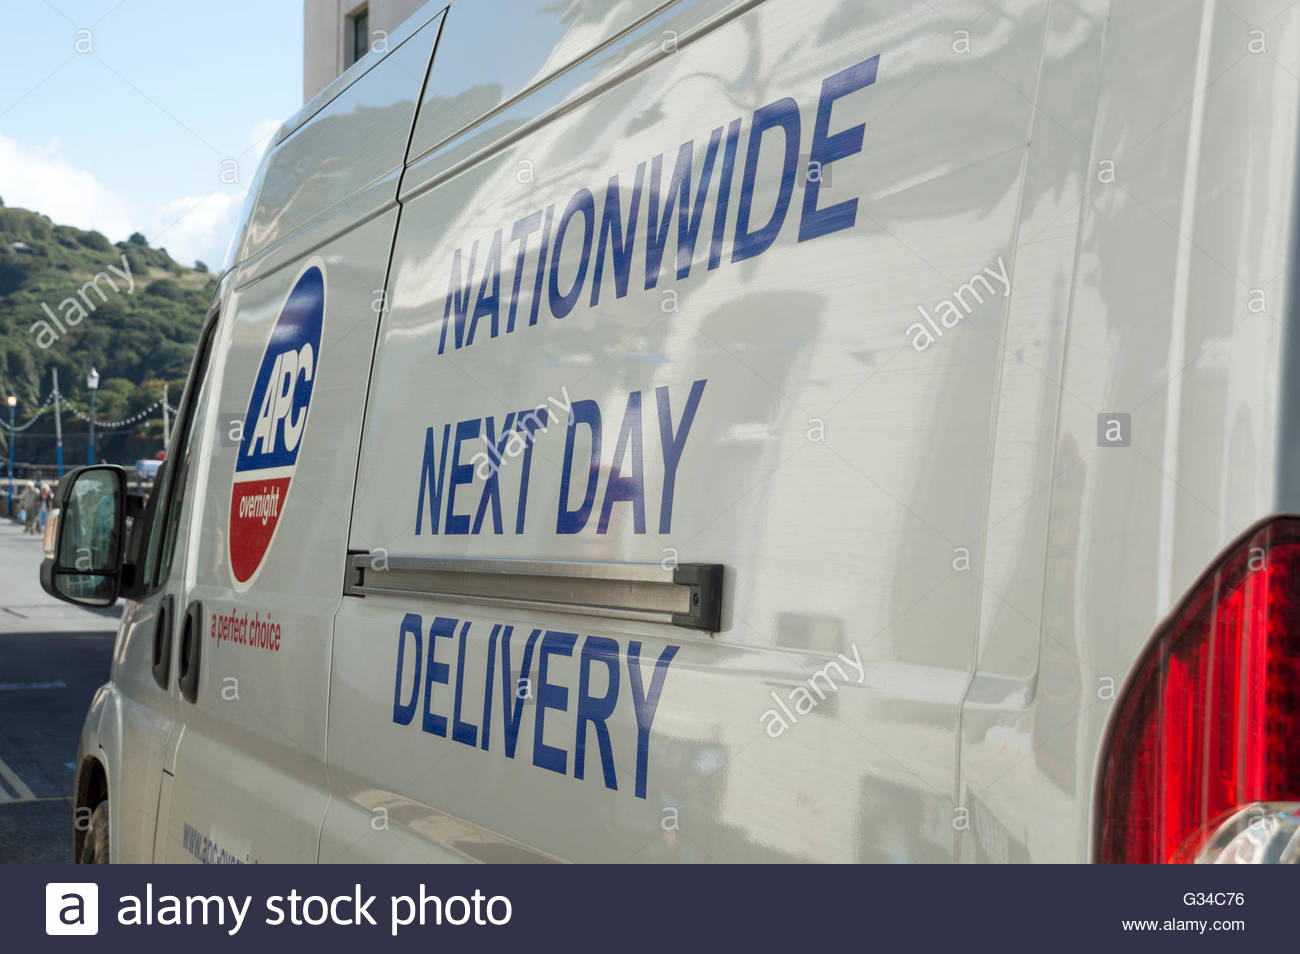 Close-up of the side of a white van advertising APC Nationwide Next Day Delivery - Stock Image